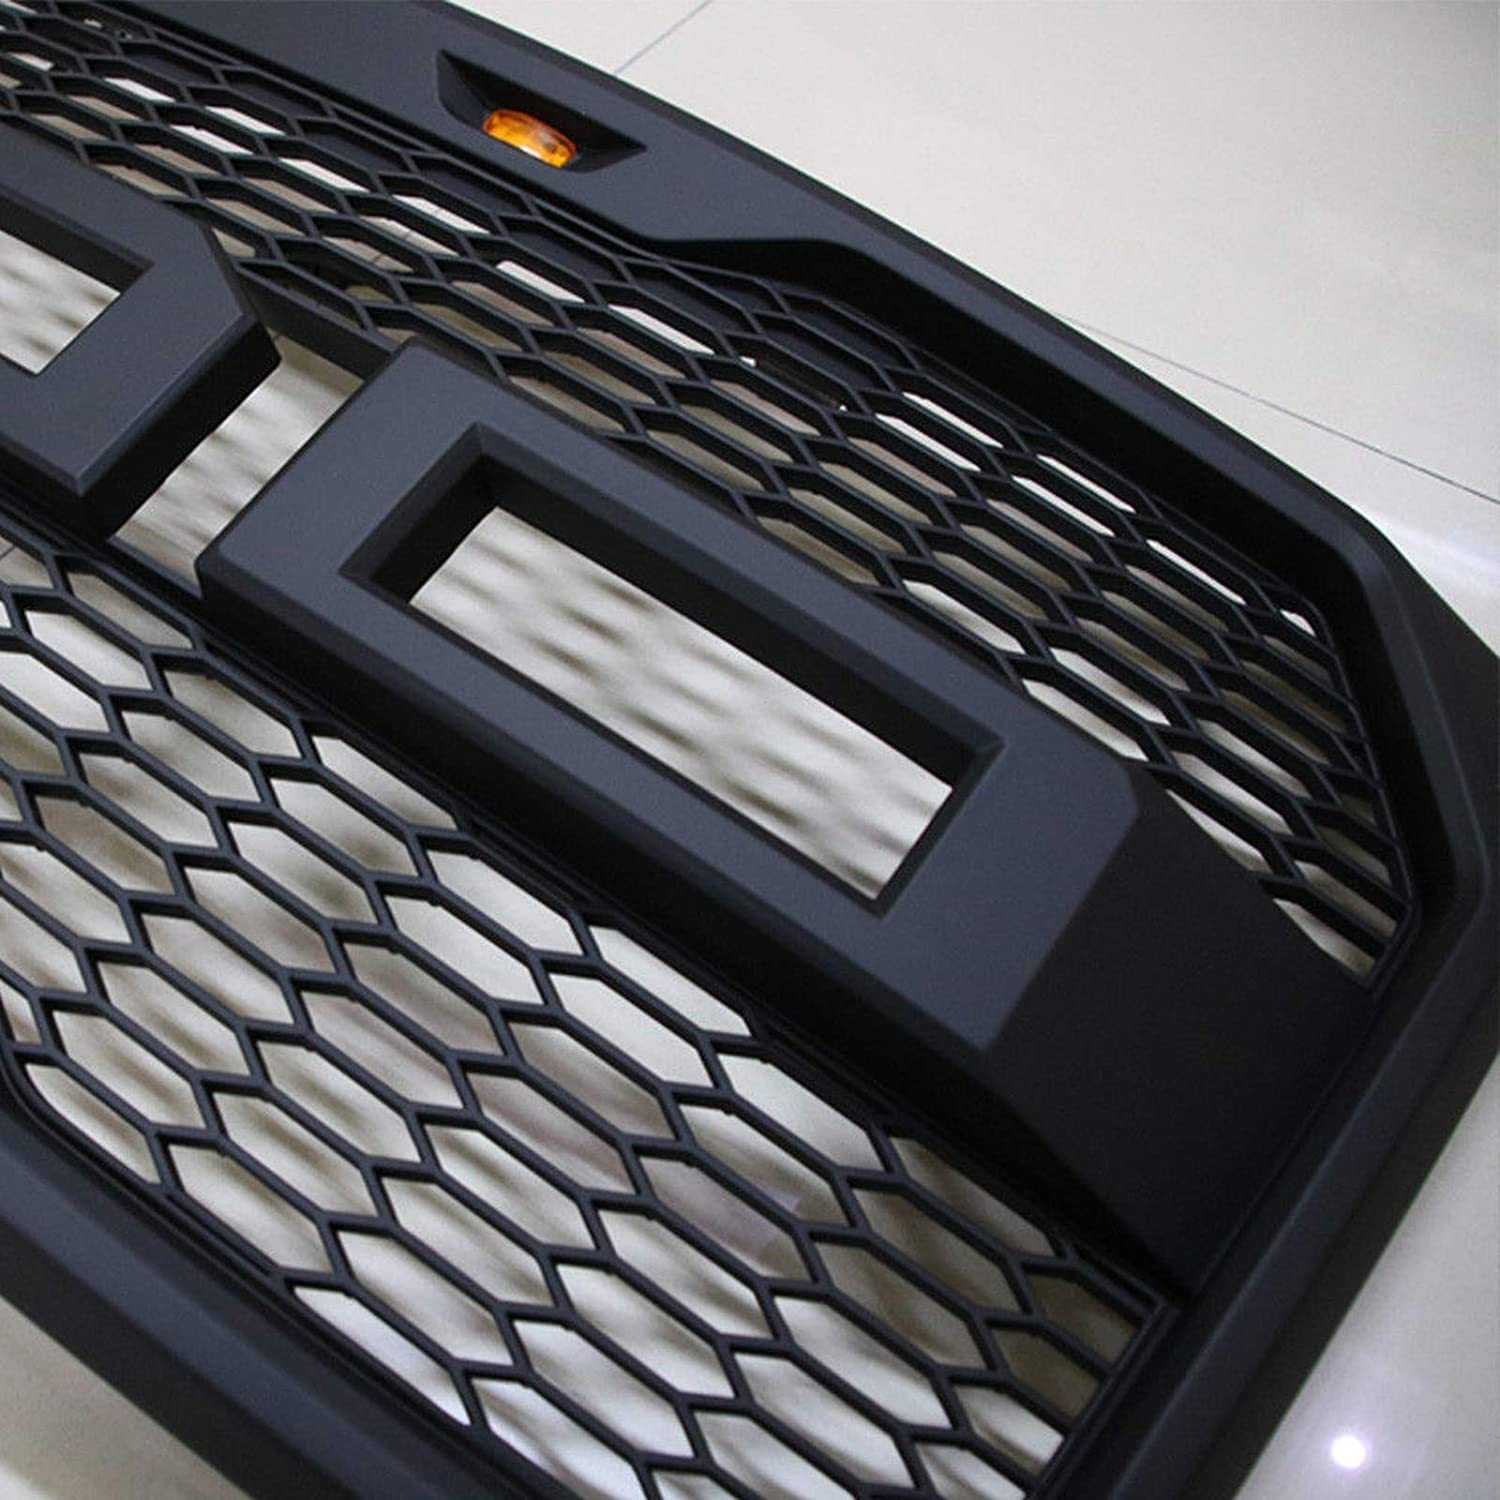 Black Front Grille Fits 2009-2014 FORD F150 Raptor Style Grill Kits With Amber LED Light and F/&R Letter